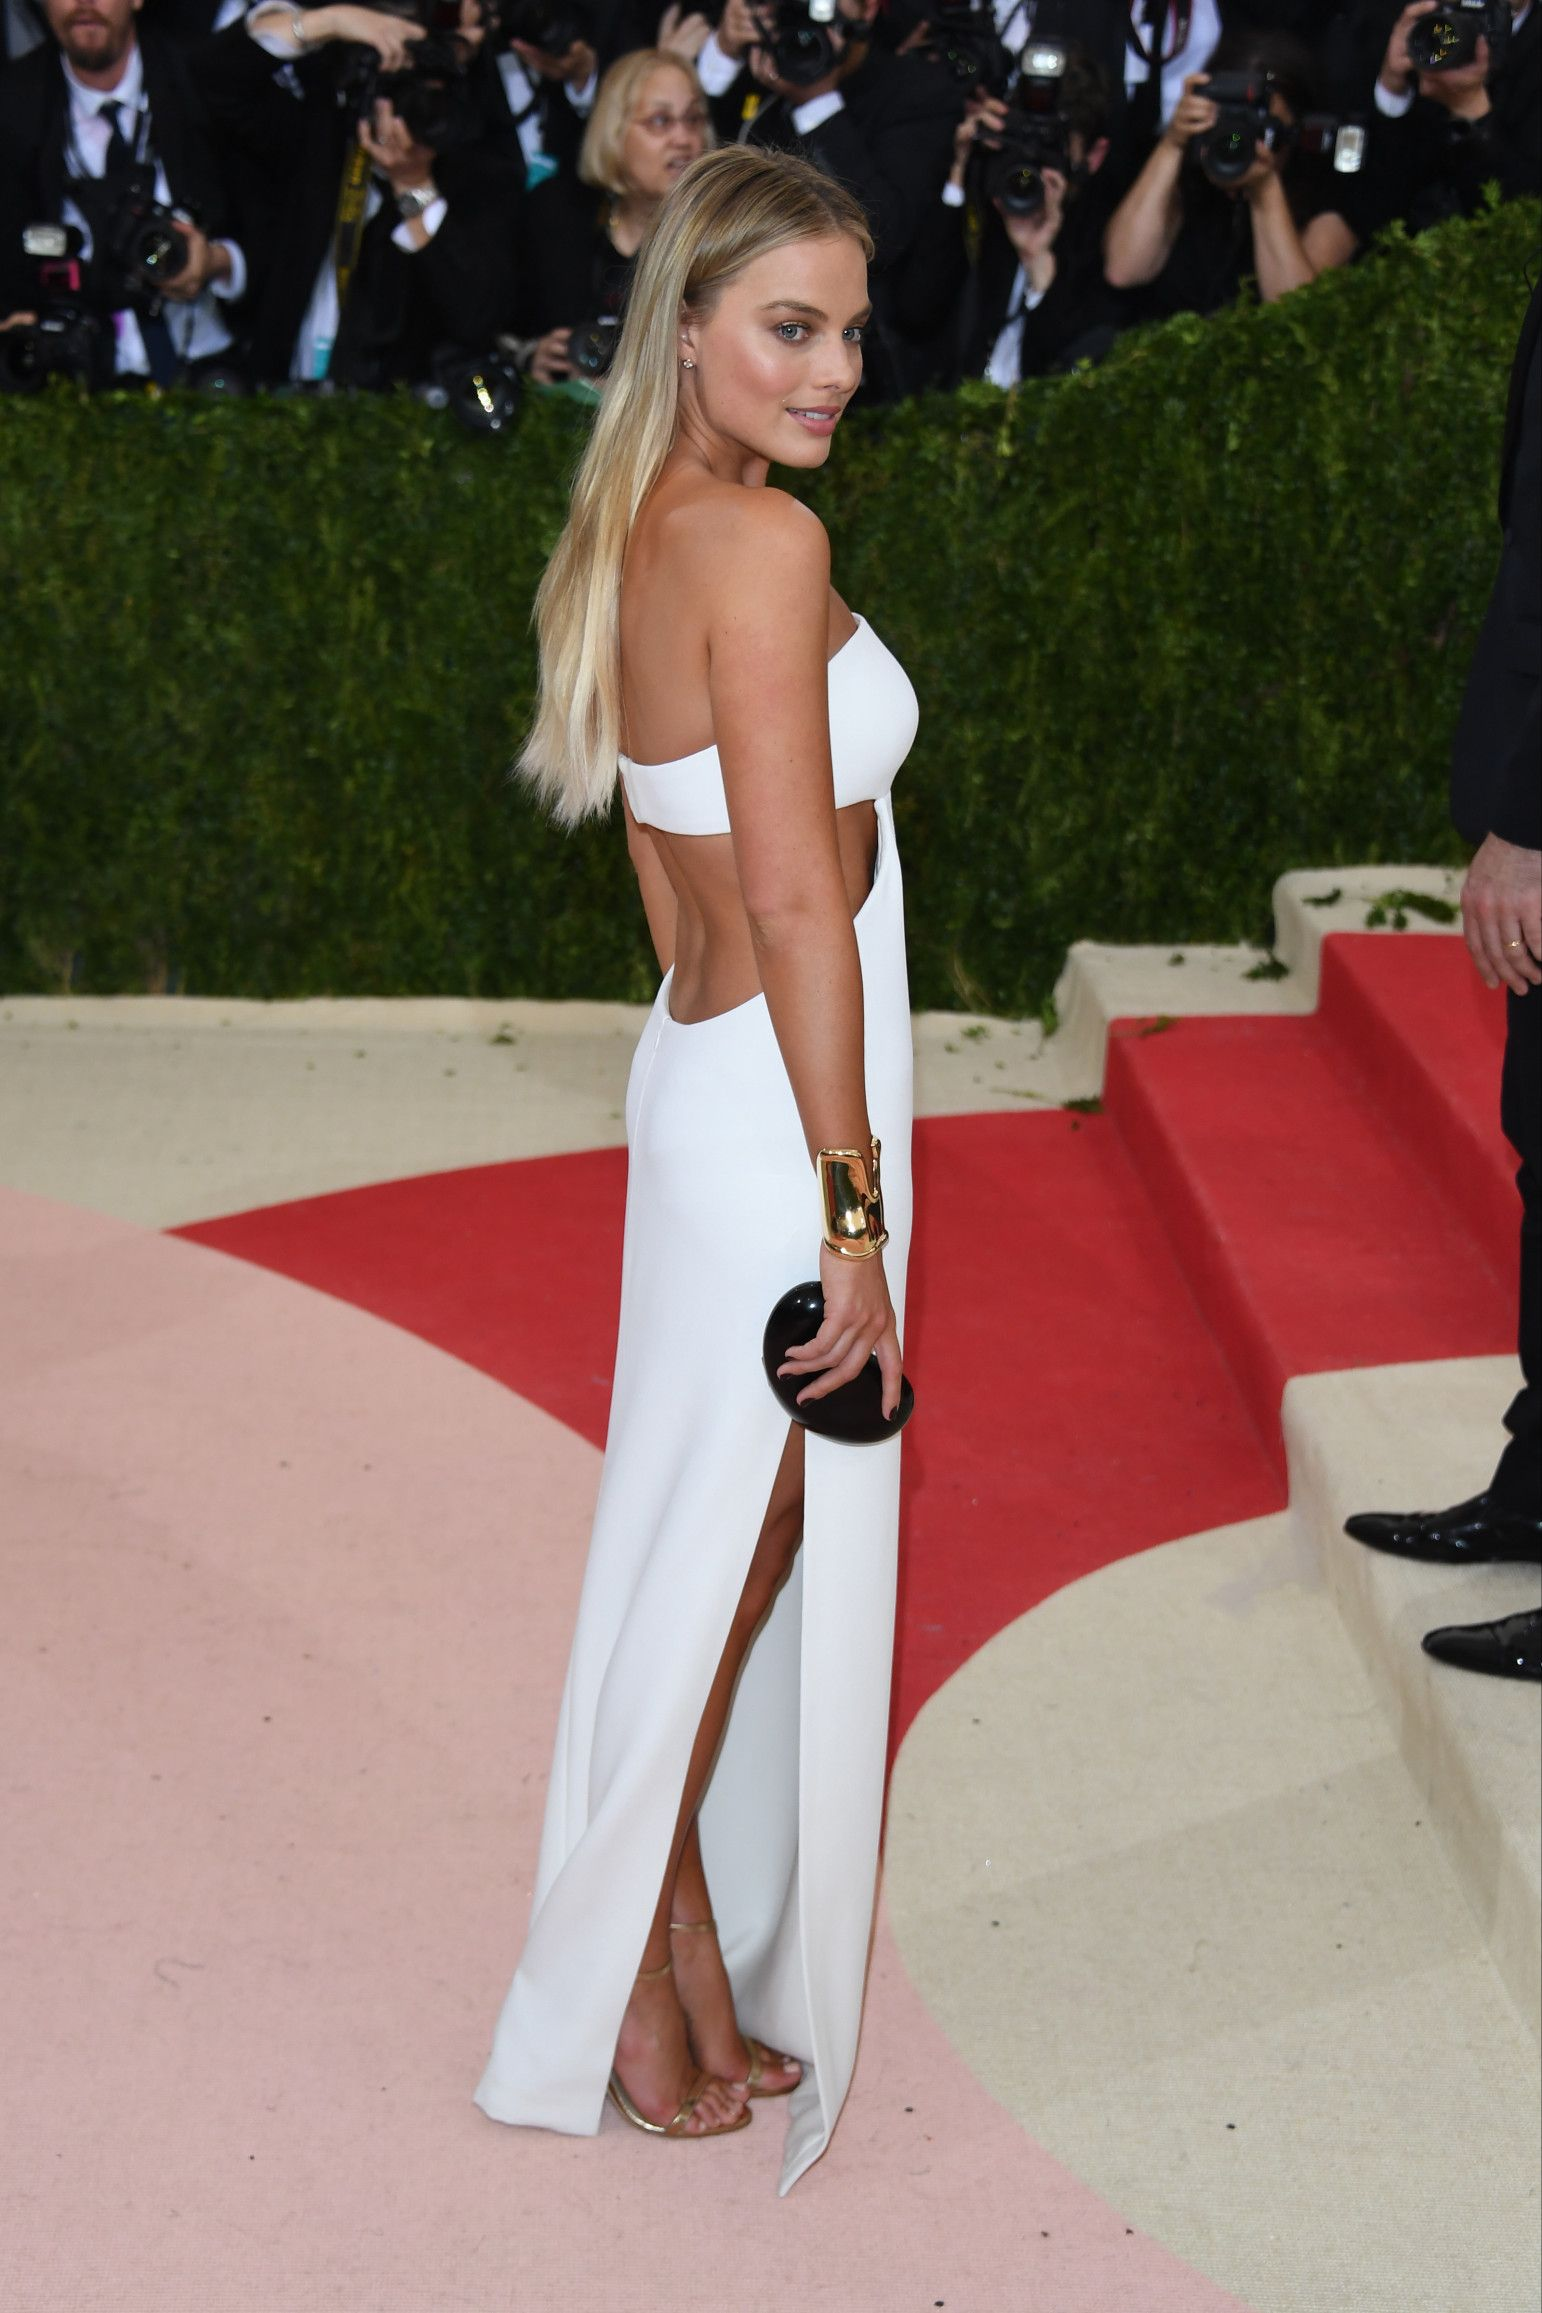 """Margot Robbie in Calvin Klein at the Met Gala for """"Manus x Machina: Fashion in an Age of Technology"""" in New York May 2016."""